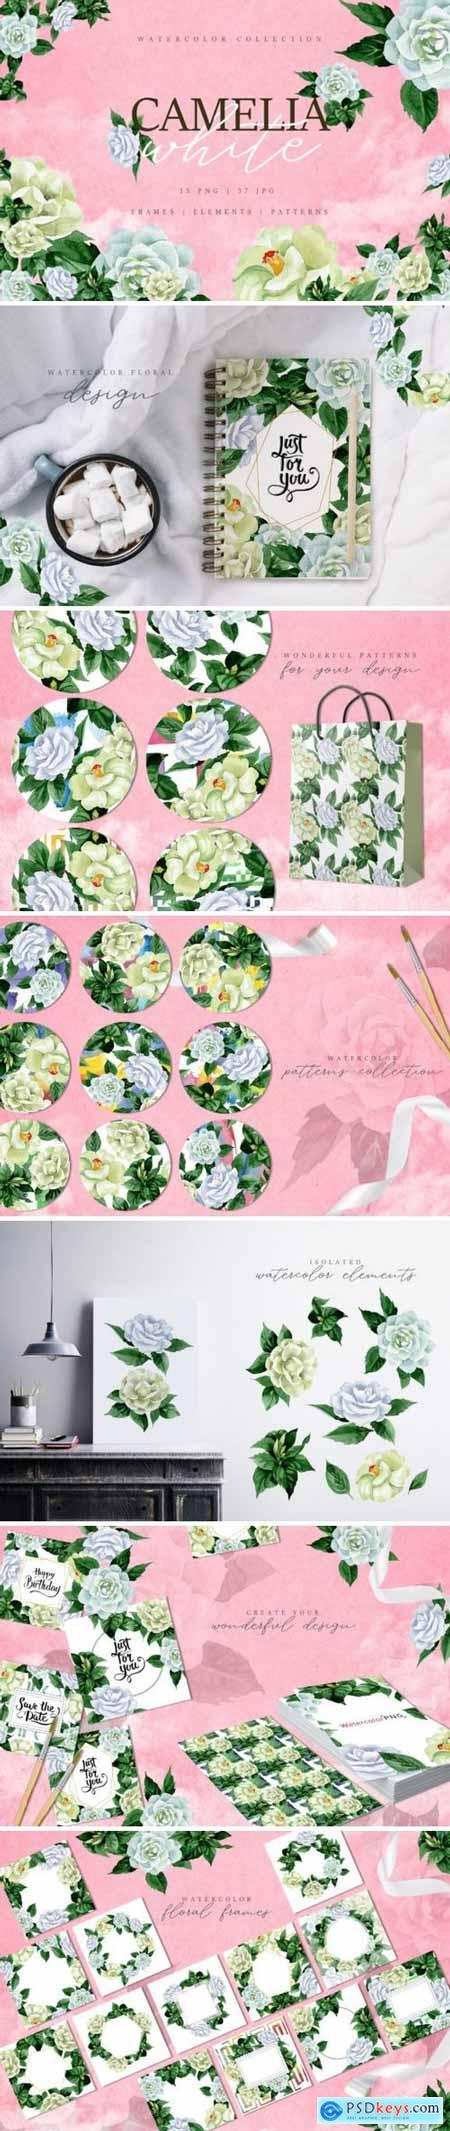 Camelia white Watercolor png